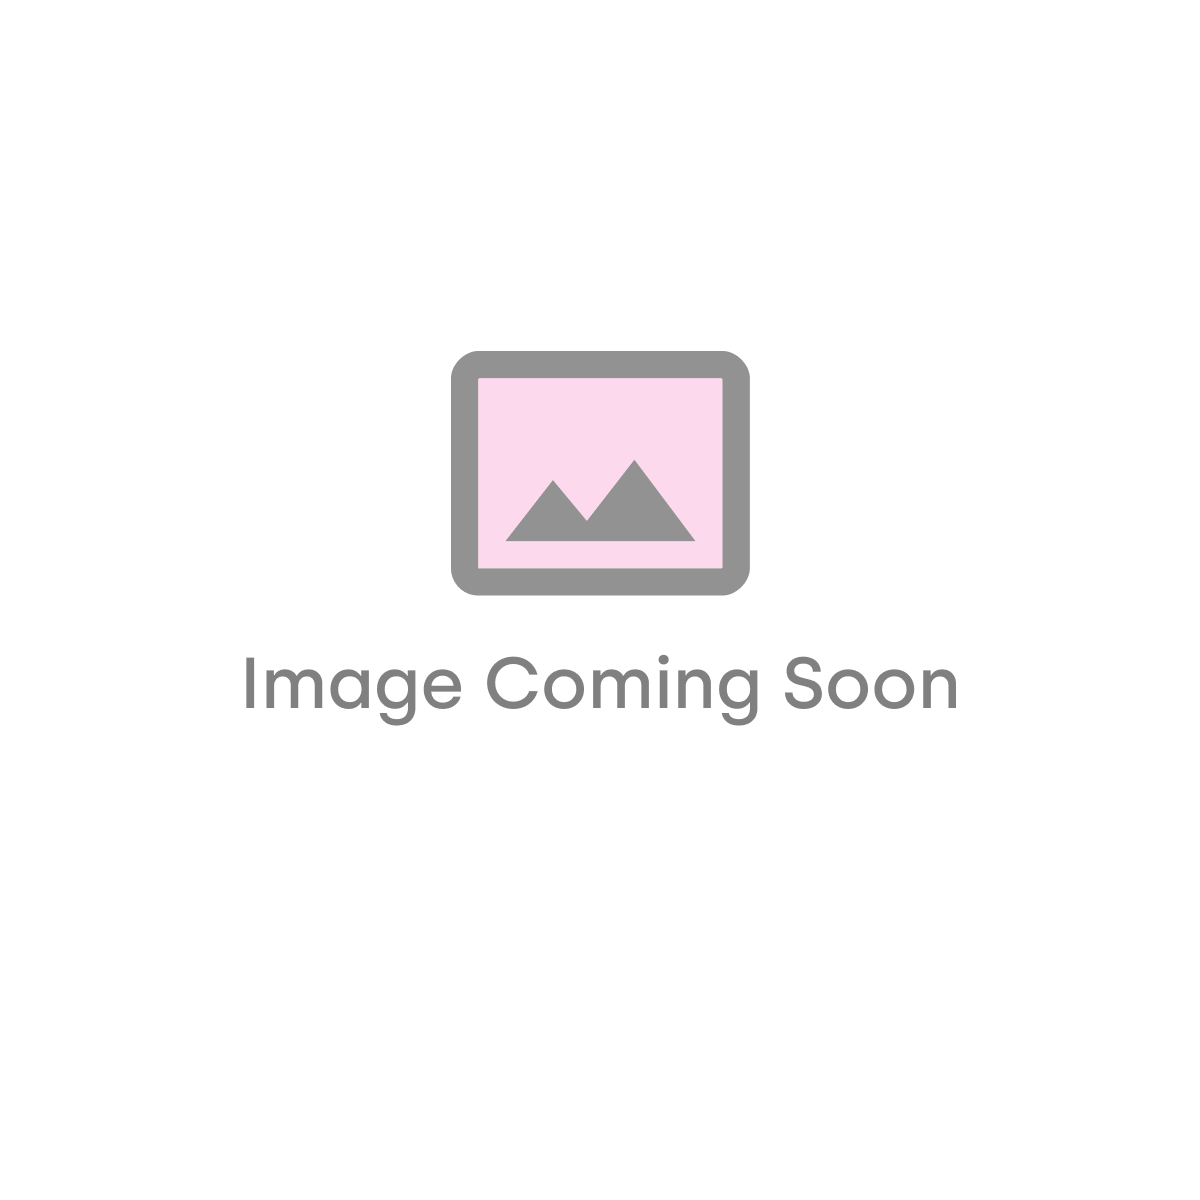 Bergo 600mm Floorstanding Vanity Unit & Minimalist Basin - Gloss White (18726)